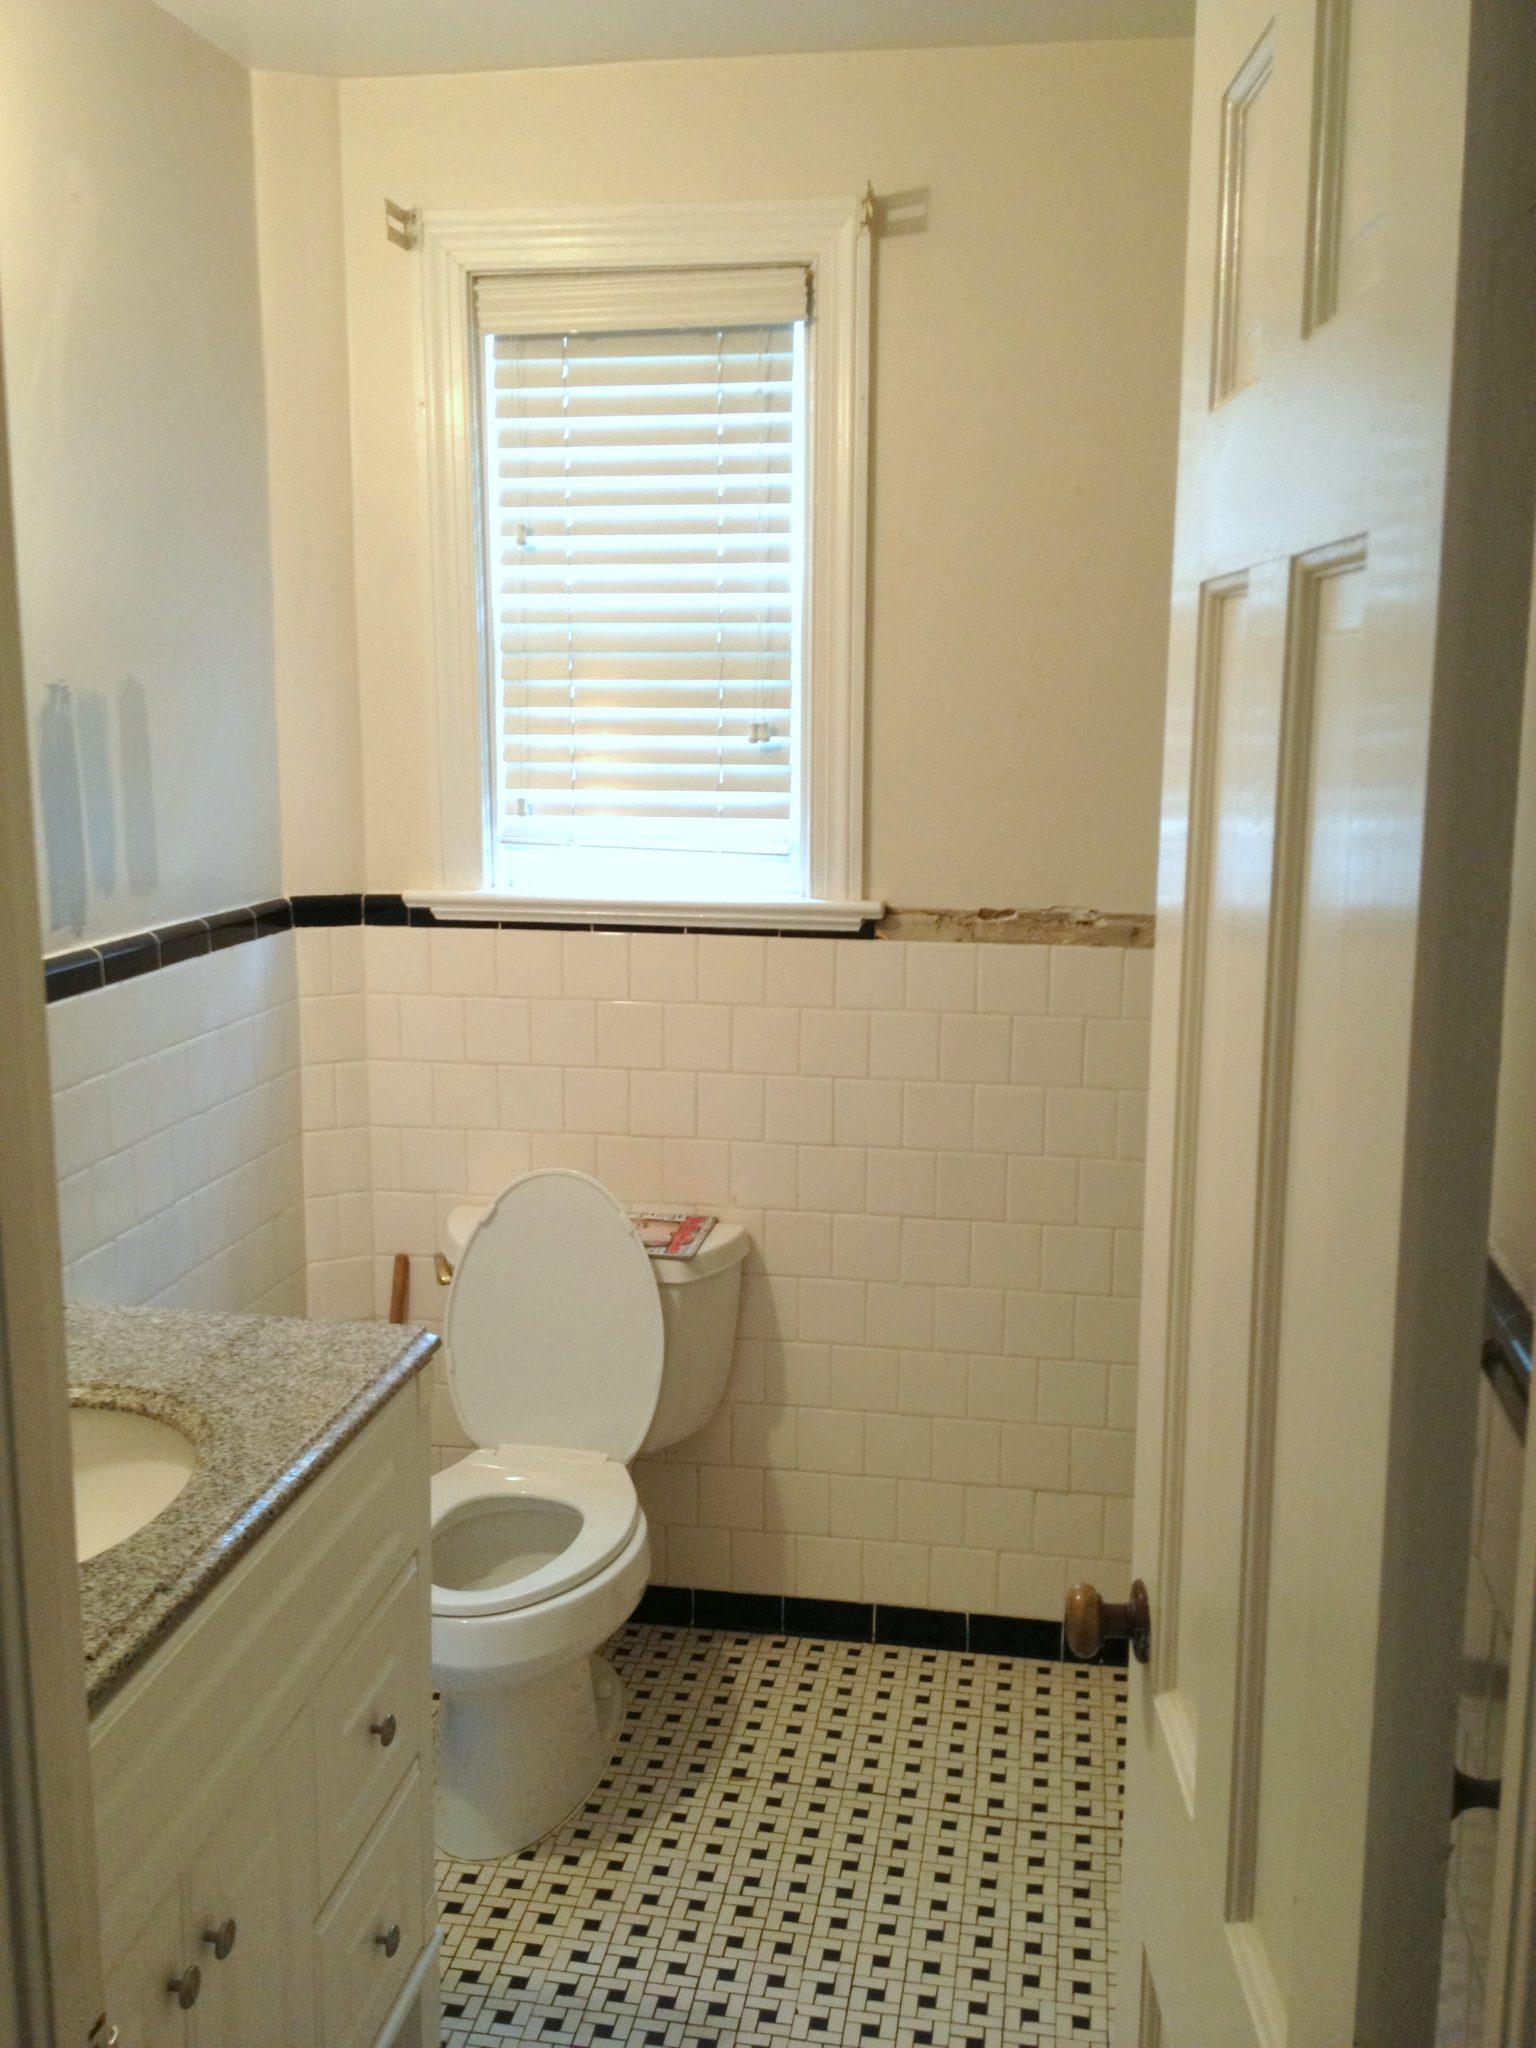 Bathroom Remodel Richmond Va Tile Ideas For Small Bathrooms Outstanding Home And Decor Re